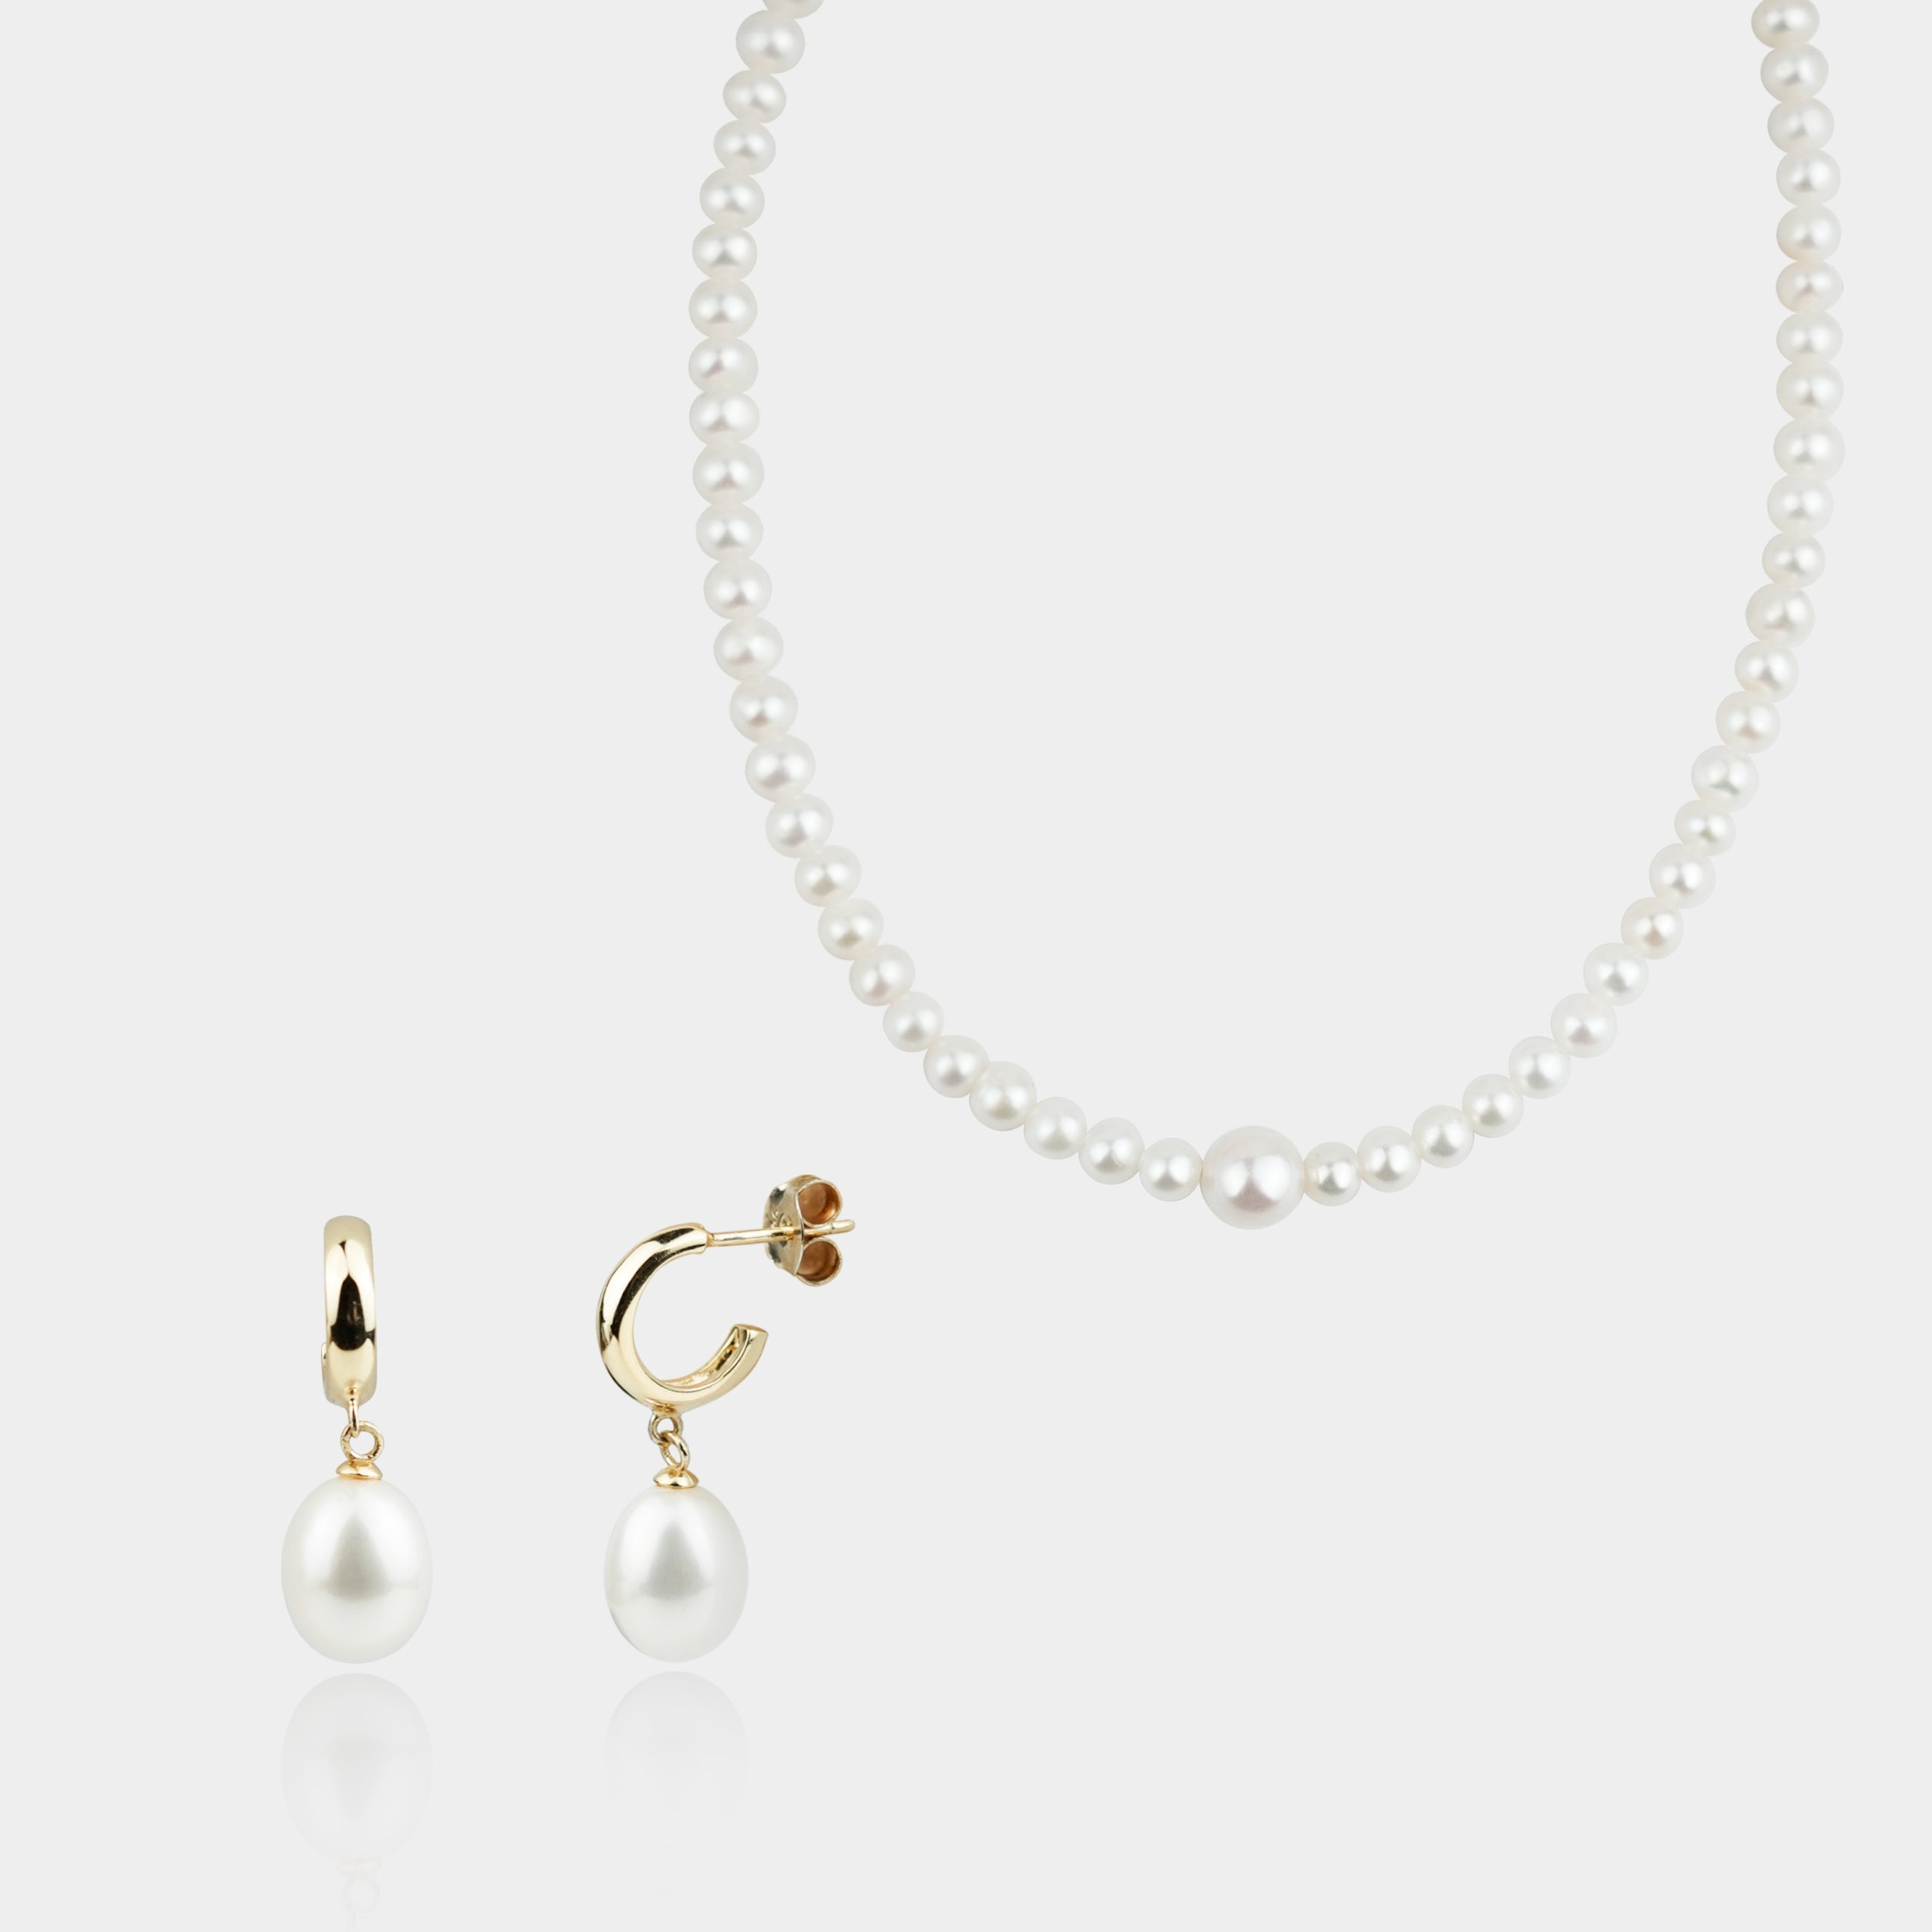 STERLING SILVER HOOP WITH DROP PEARL EARRINGS + EFFERVESCENCE PEARL CHOKER